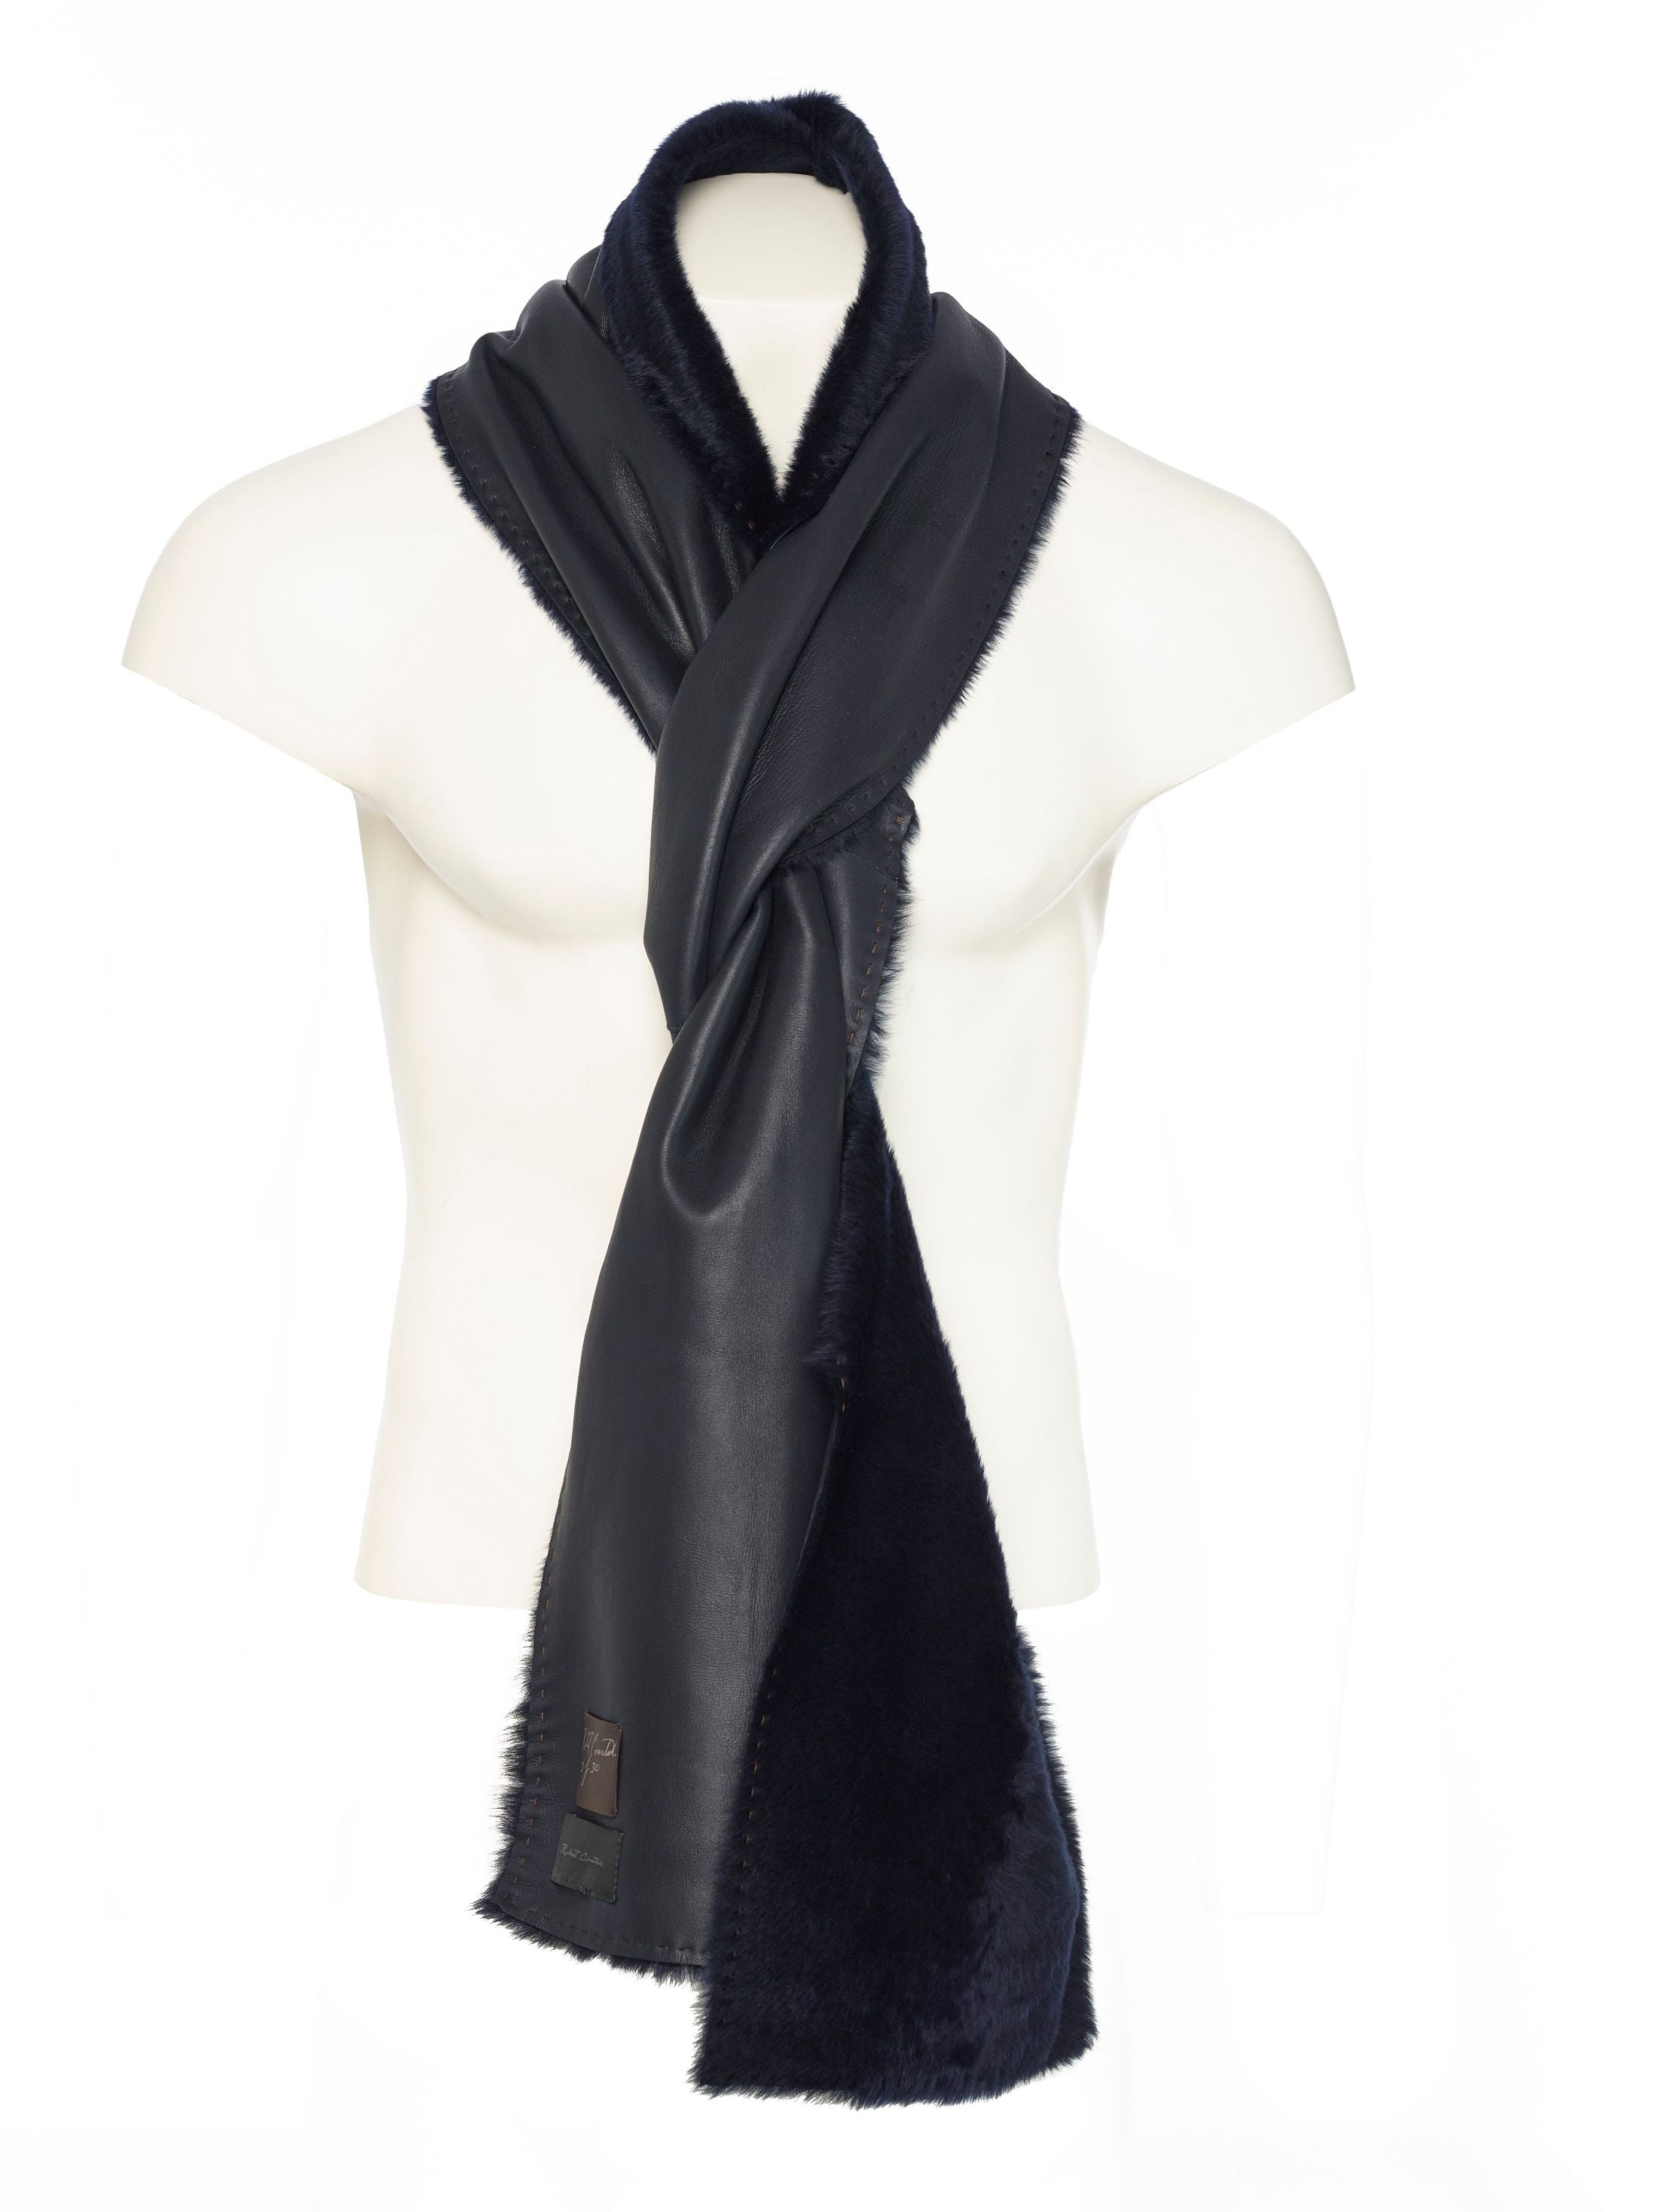 With the softest touch imaginable methods of wearing the piece are limitless